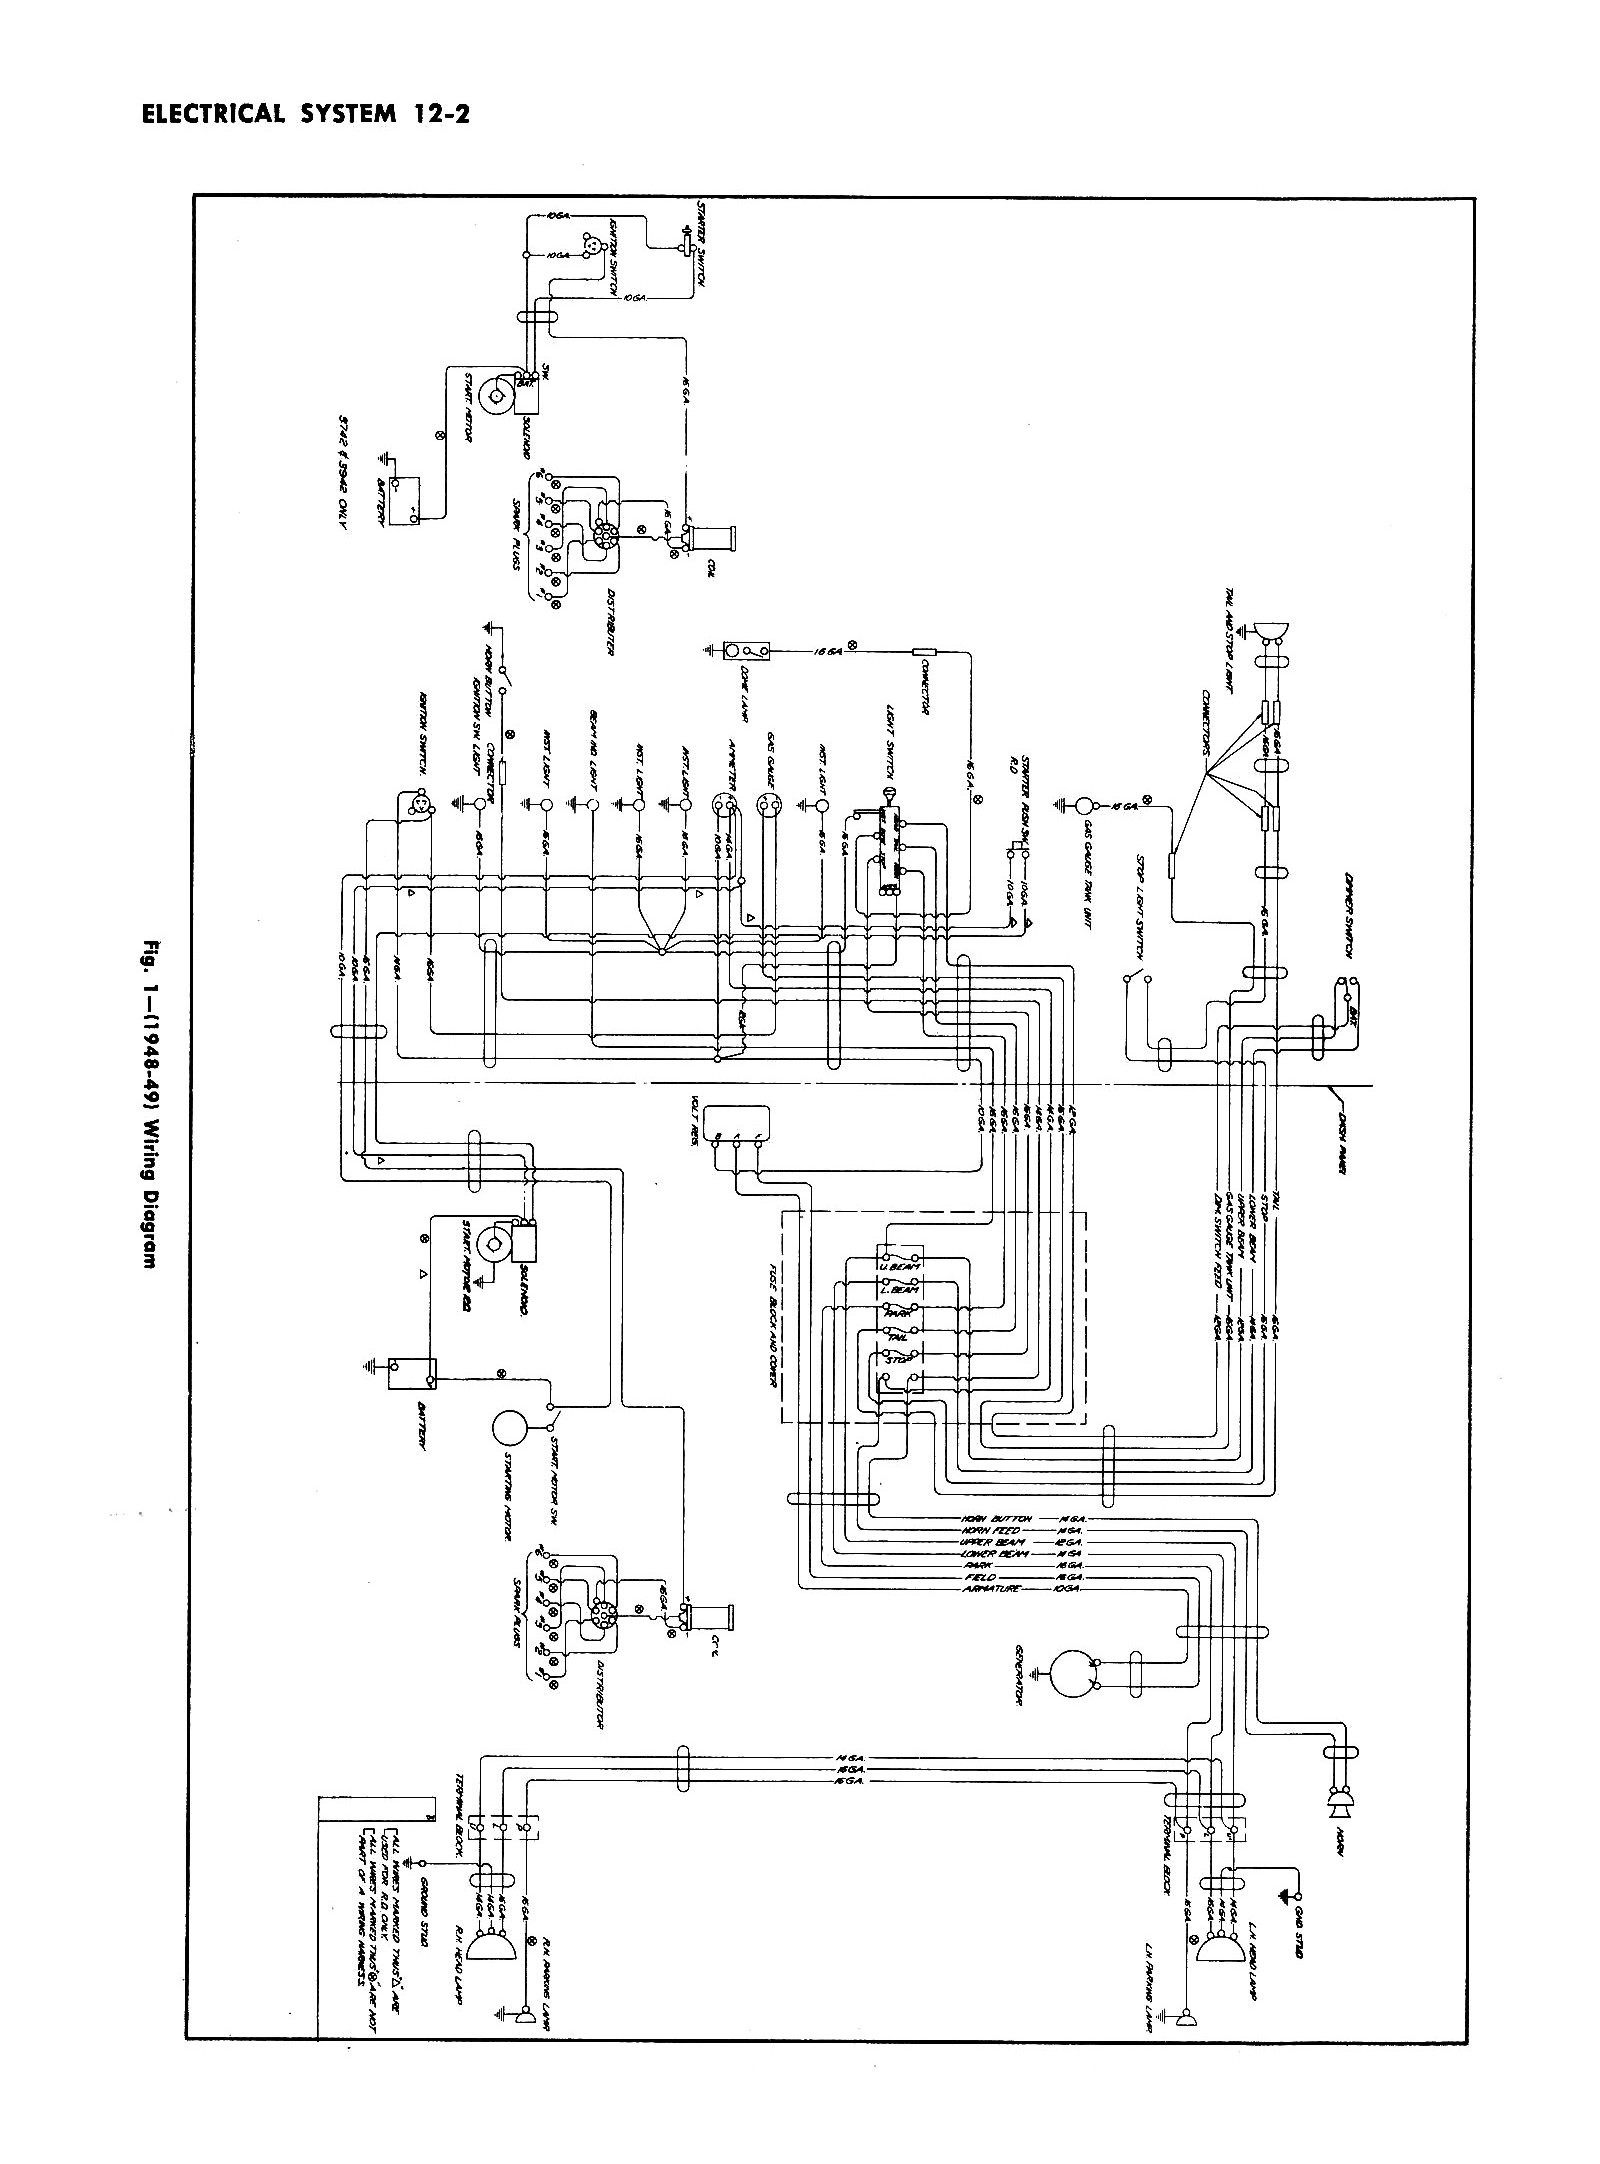 1949 chevy pickup wiring diagram wiring diagram 1951 Chevy Truck Wiring Harness Diagram 1951 chevy truck wiring harness diagram